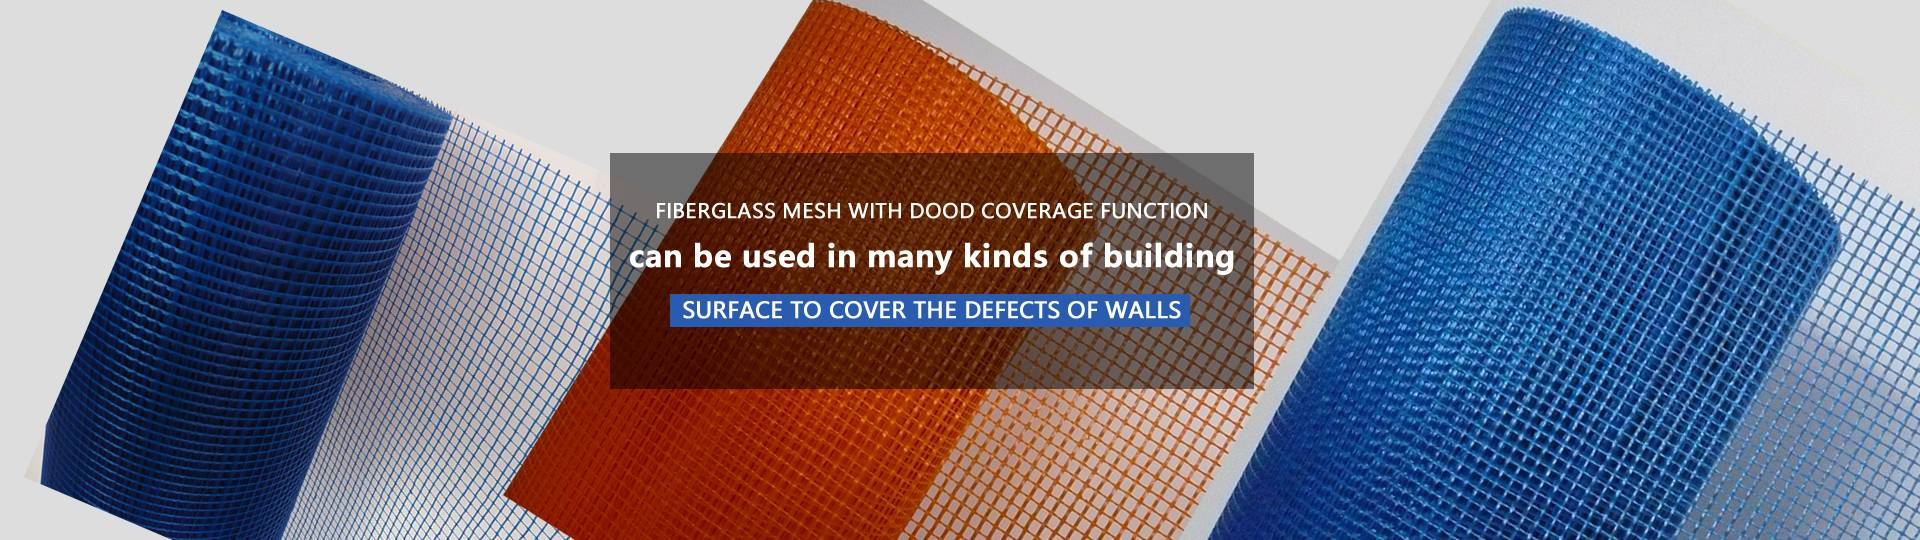 rolls of fiberglass mesh in blue and orange colors.